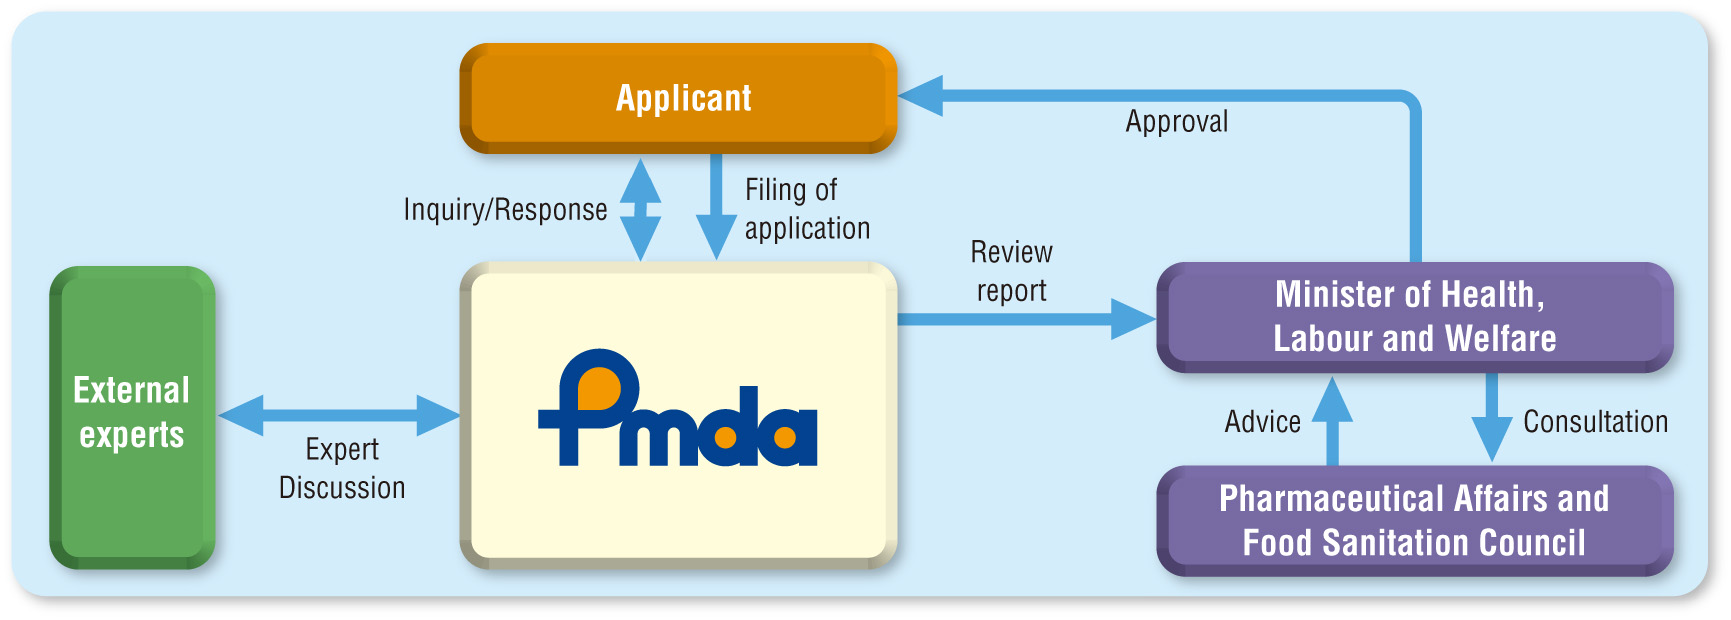 Review Process for Drug or Medical Device Application